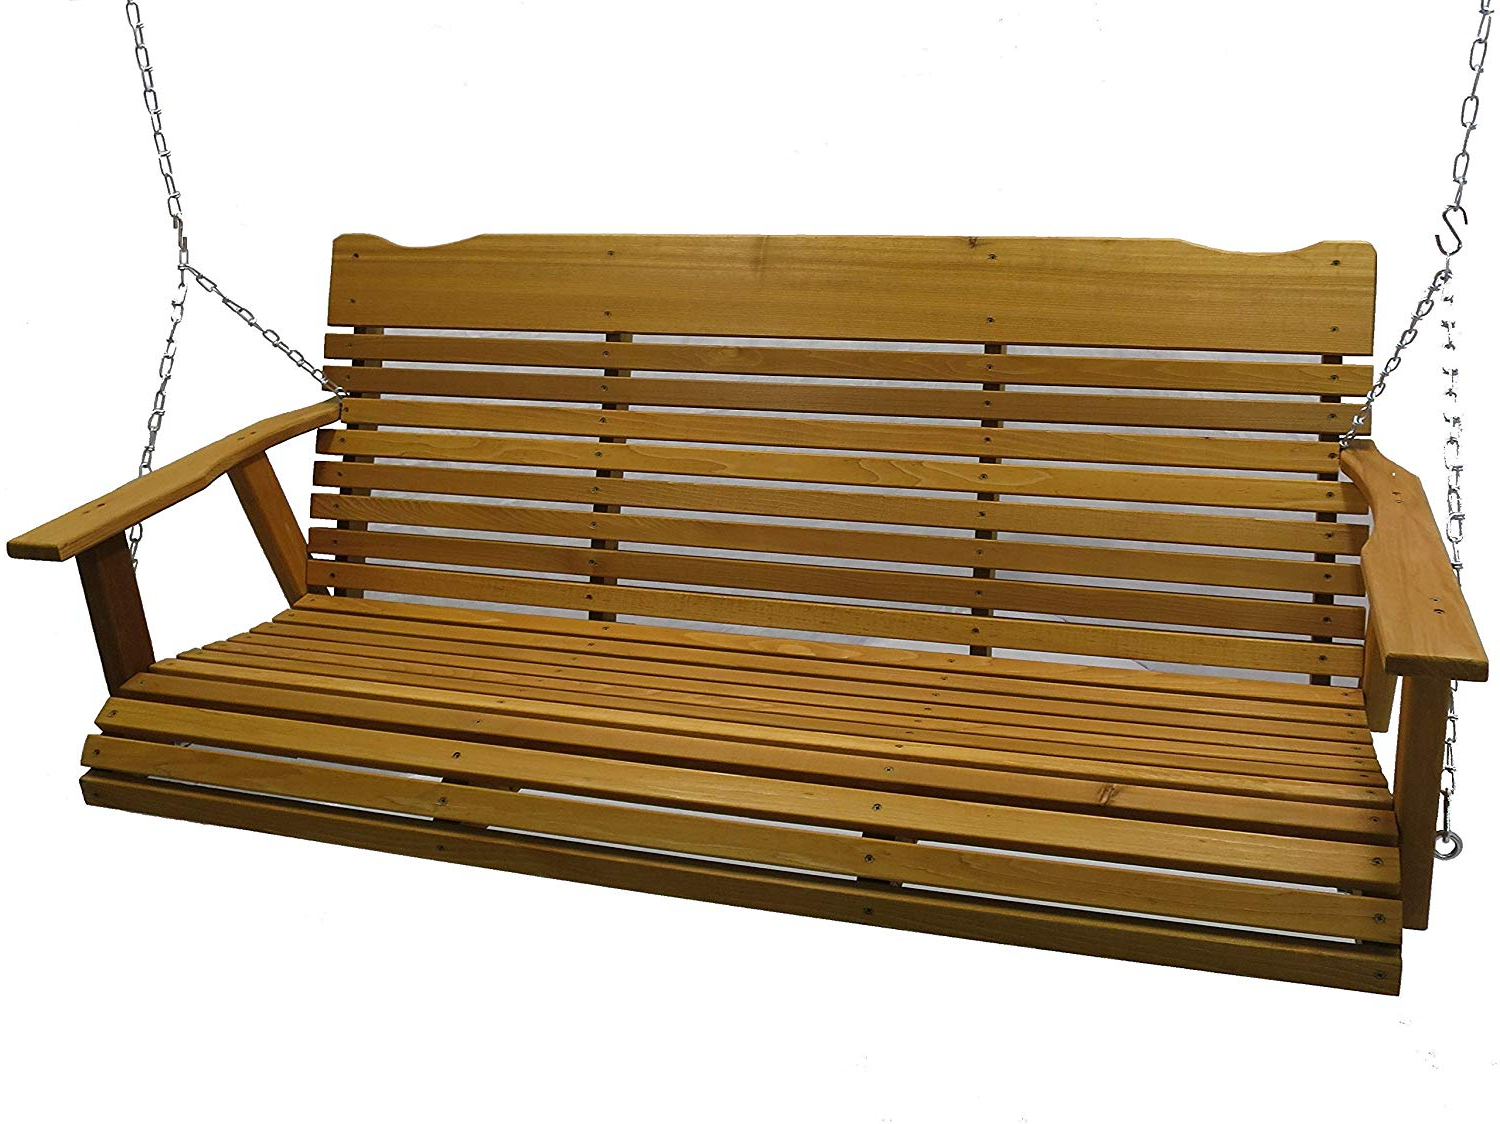 Fashionable Kilmer Creek 5 Foot Cedar Porch Swing, Stained Finish, Amish Crafted, Includes Chain & Springs Pertaining To Plain Porch Swings (View 2 of 30)